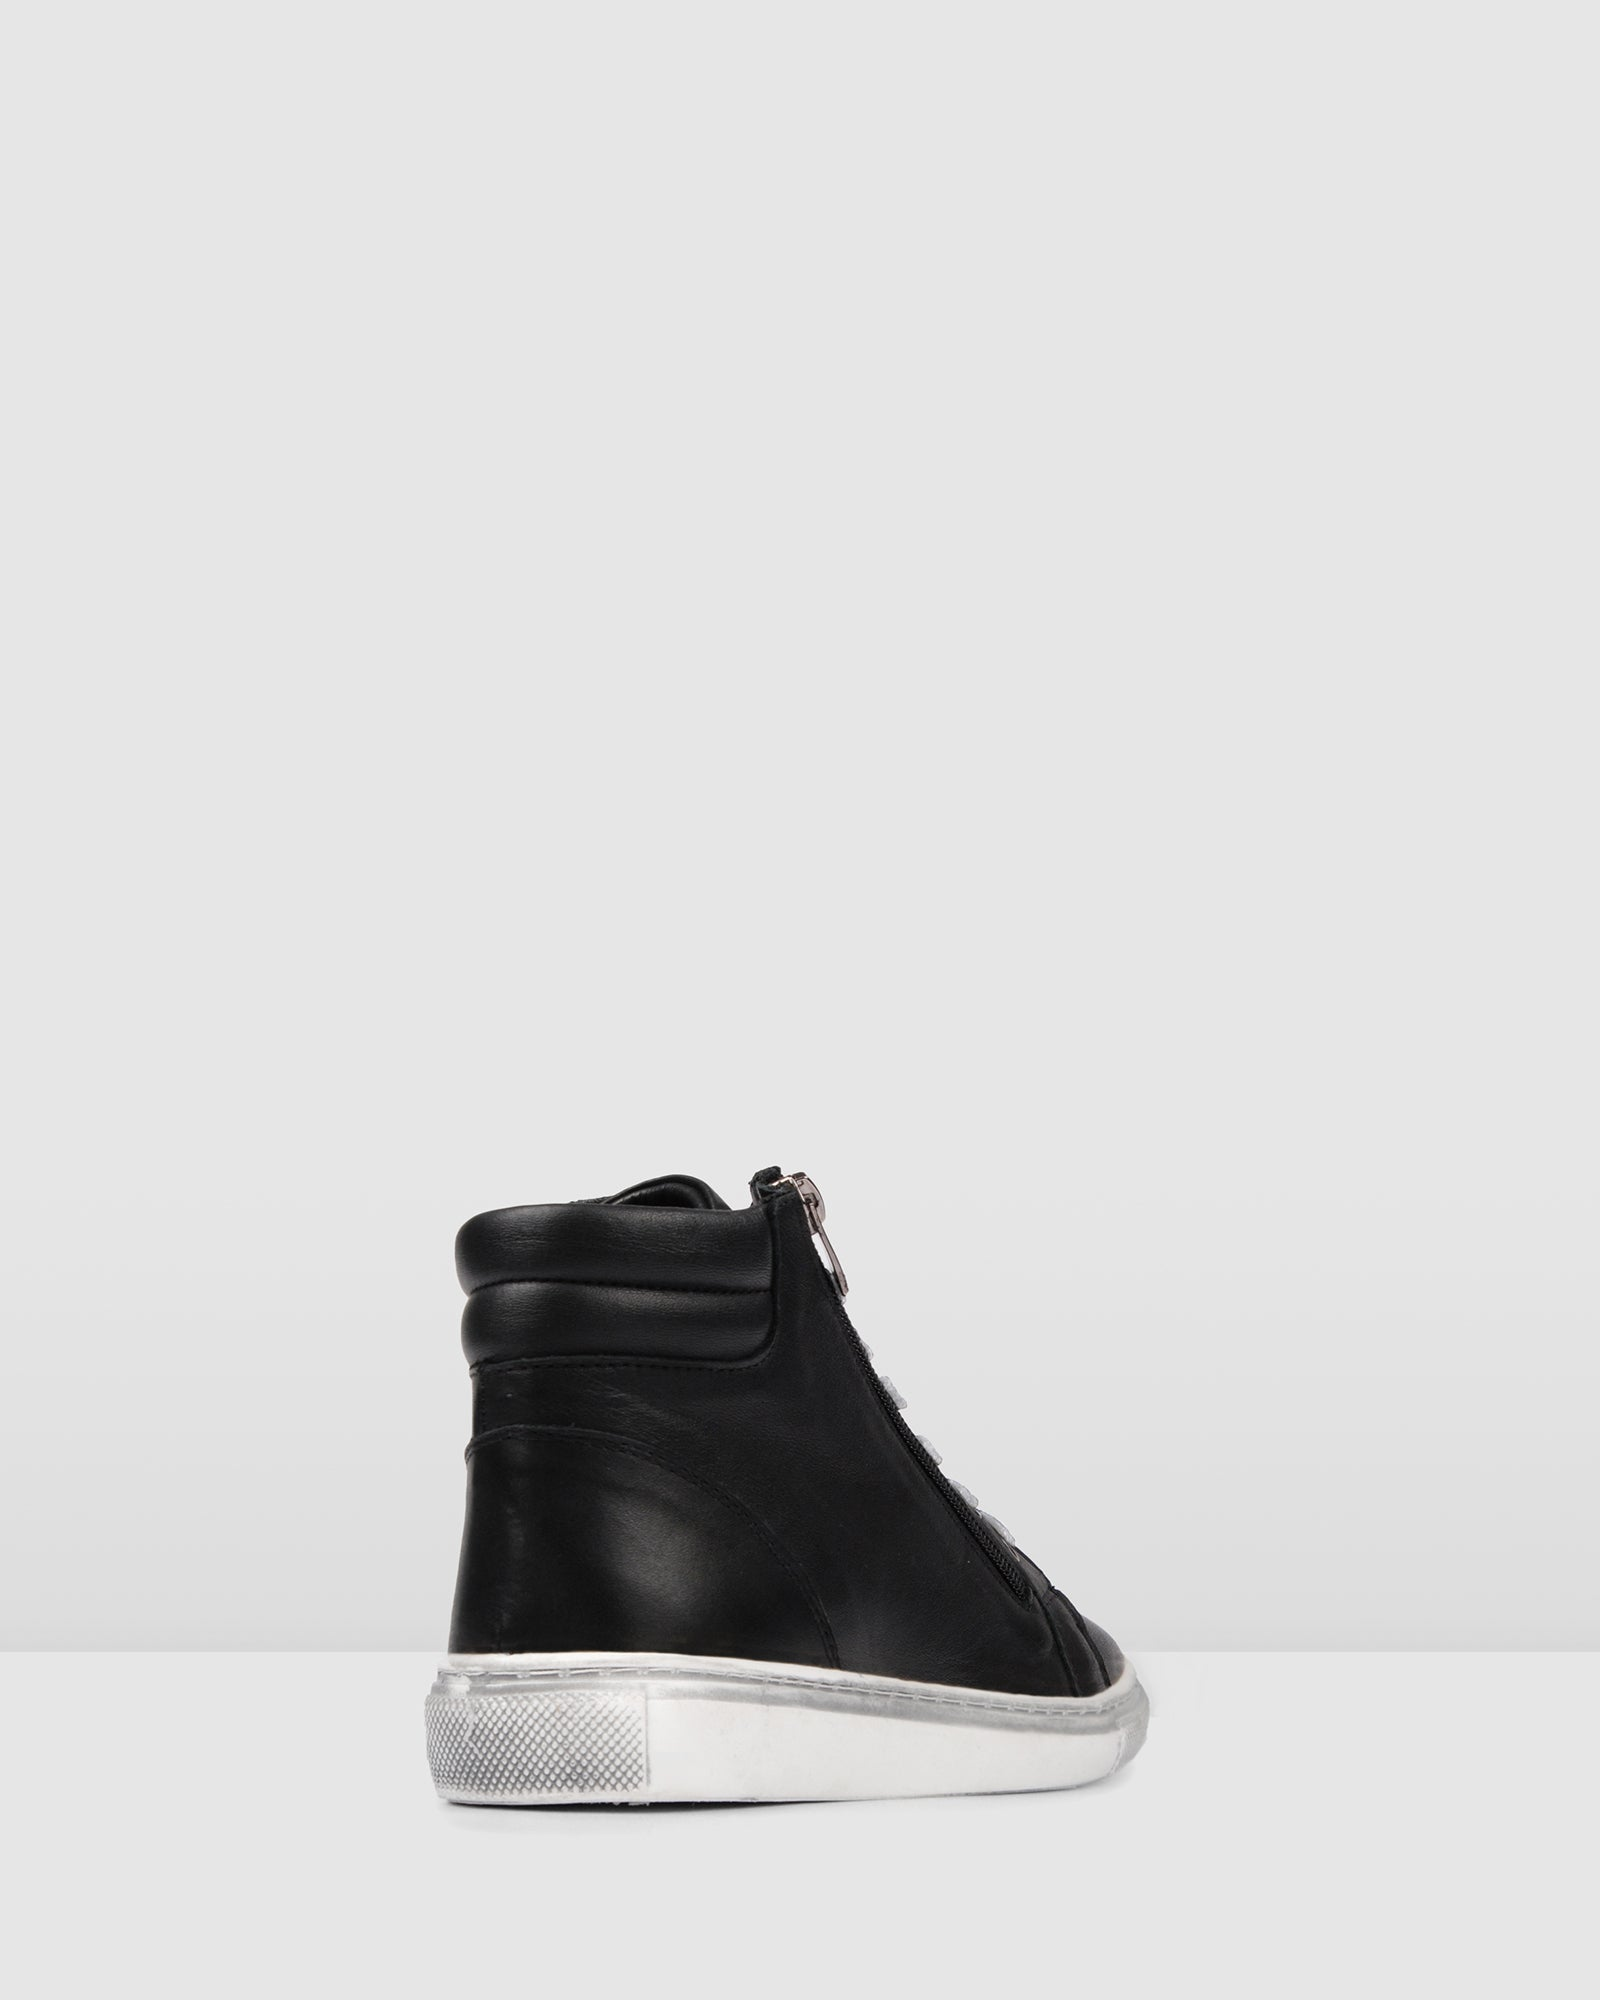 RAMONA SNEAKERS BLACK LEATHER